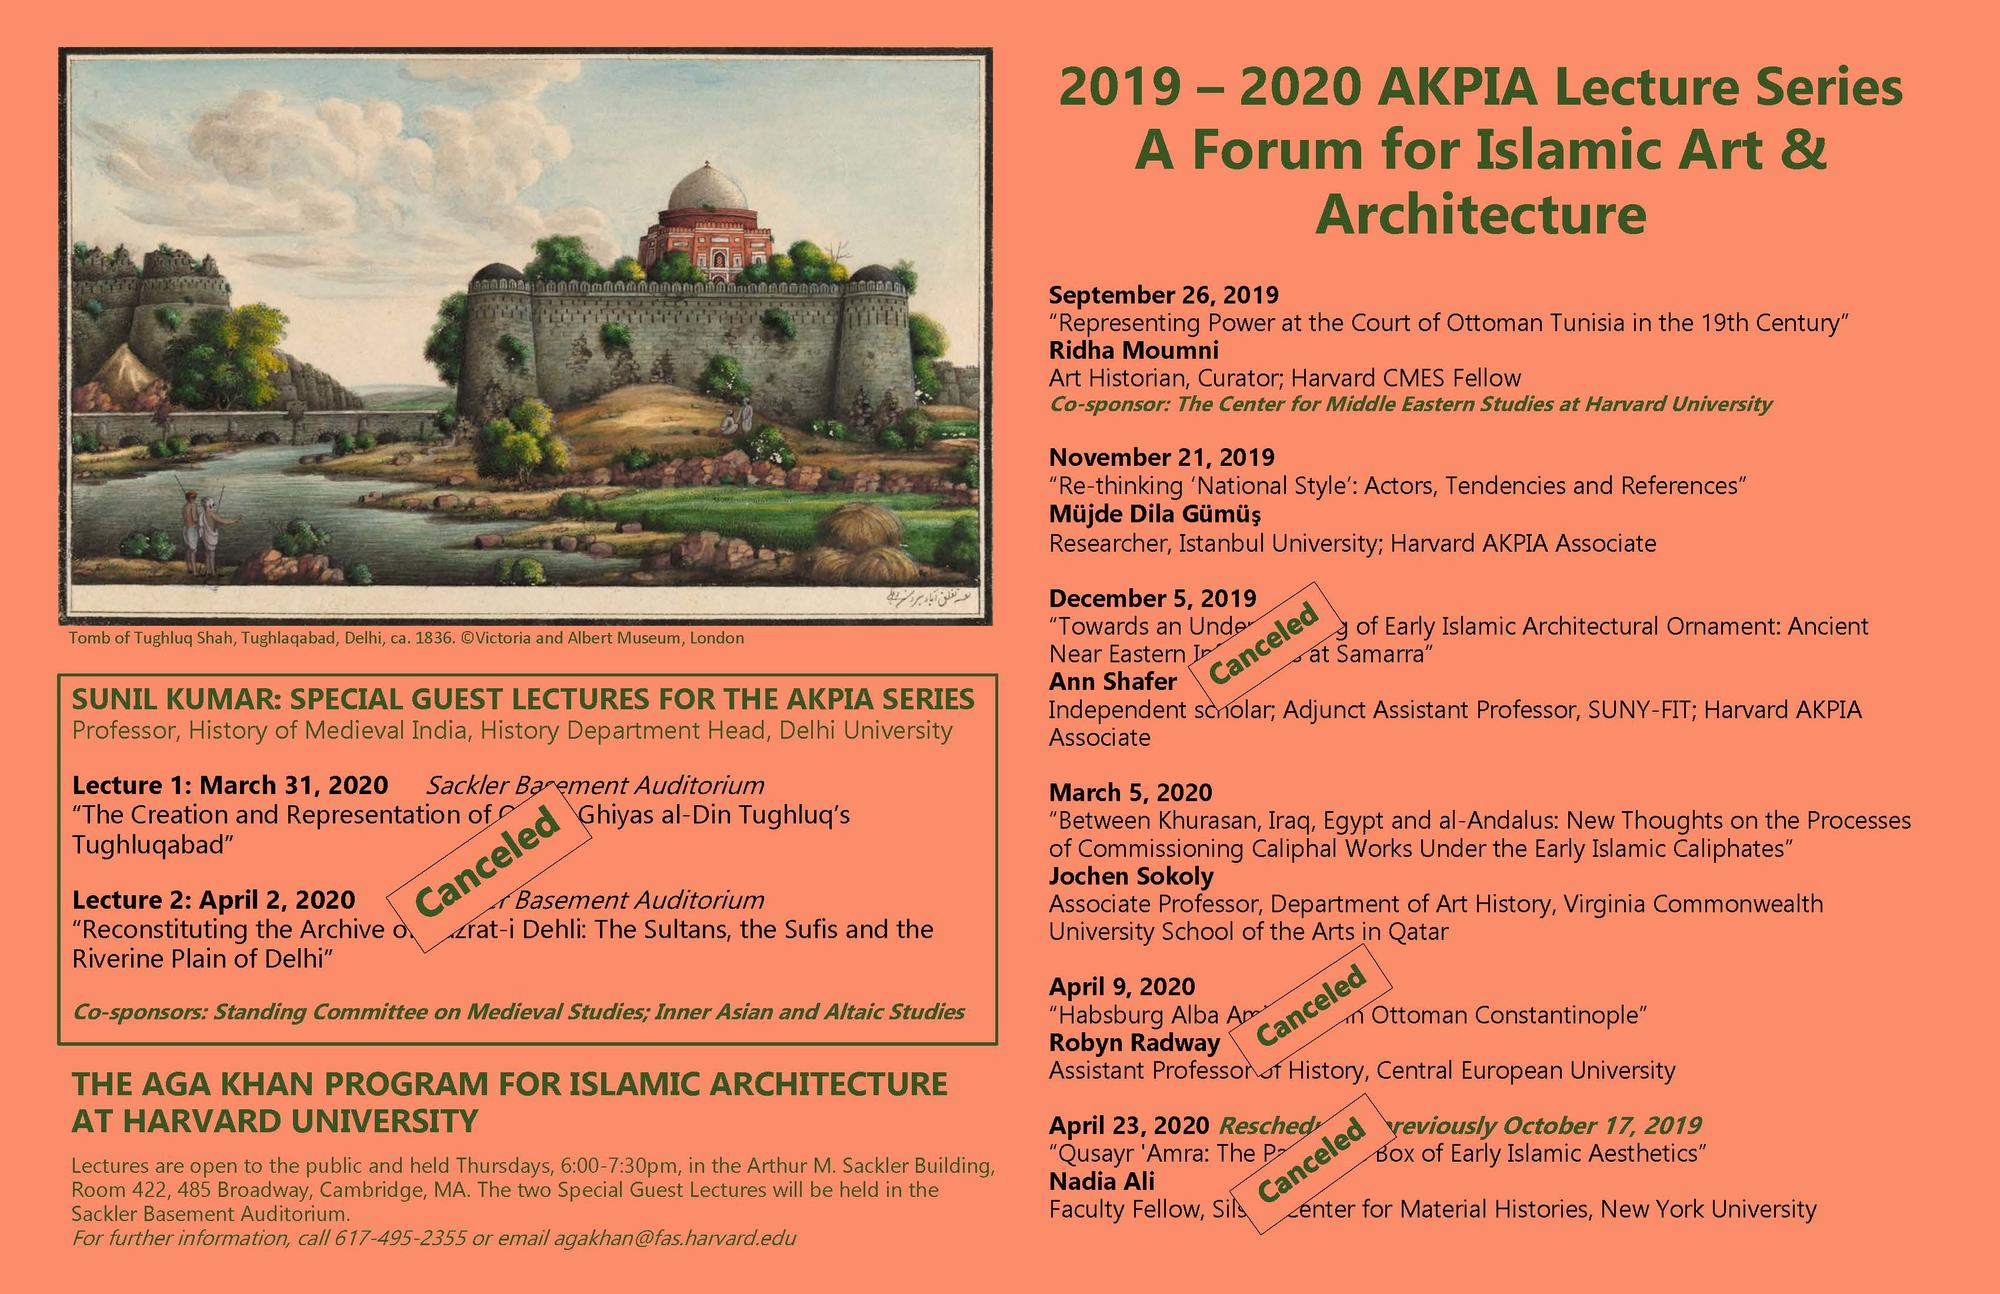 AKPIA Lecture Poster 2019 2020 as of 011420